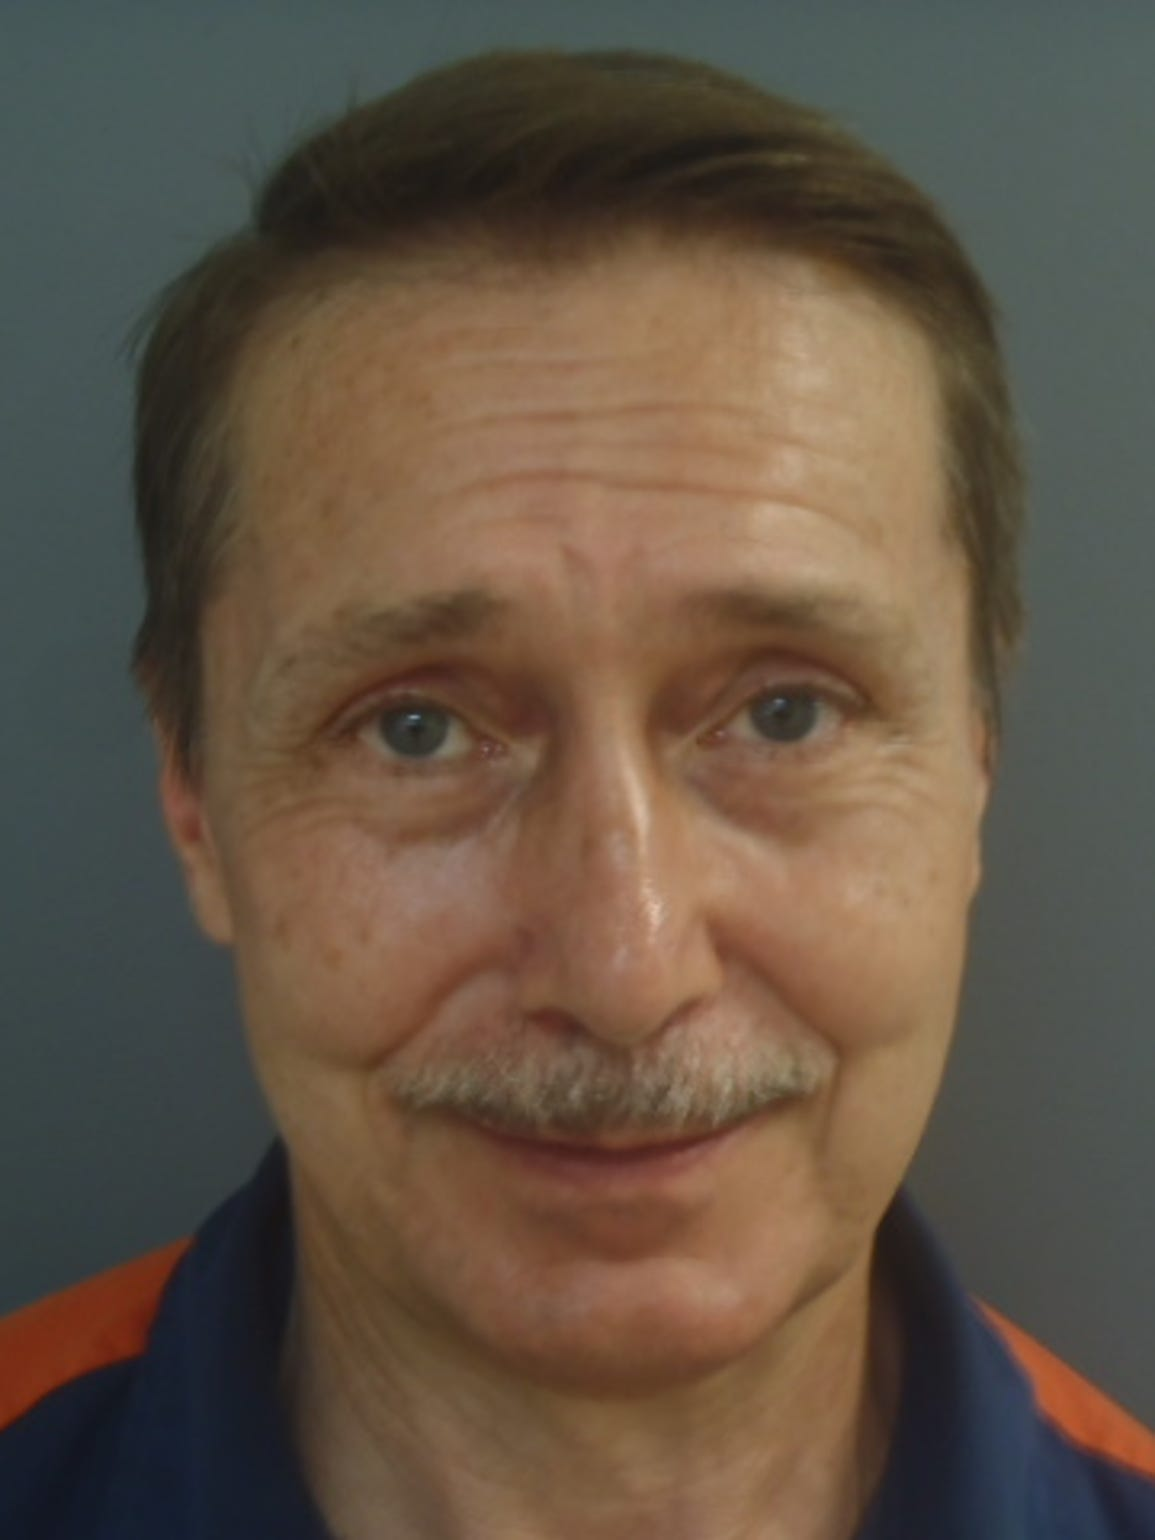 In 1979, Don Miller told police he killed four women